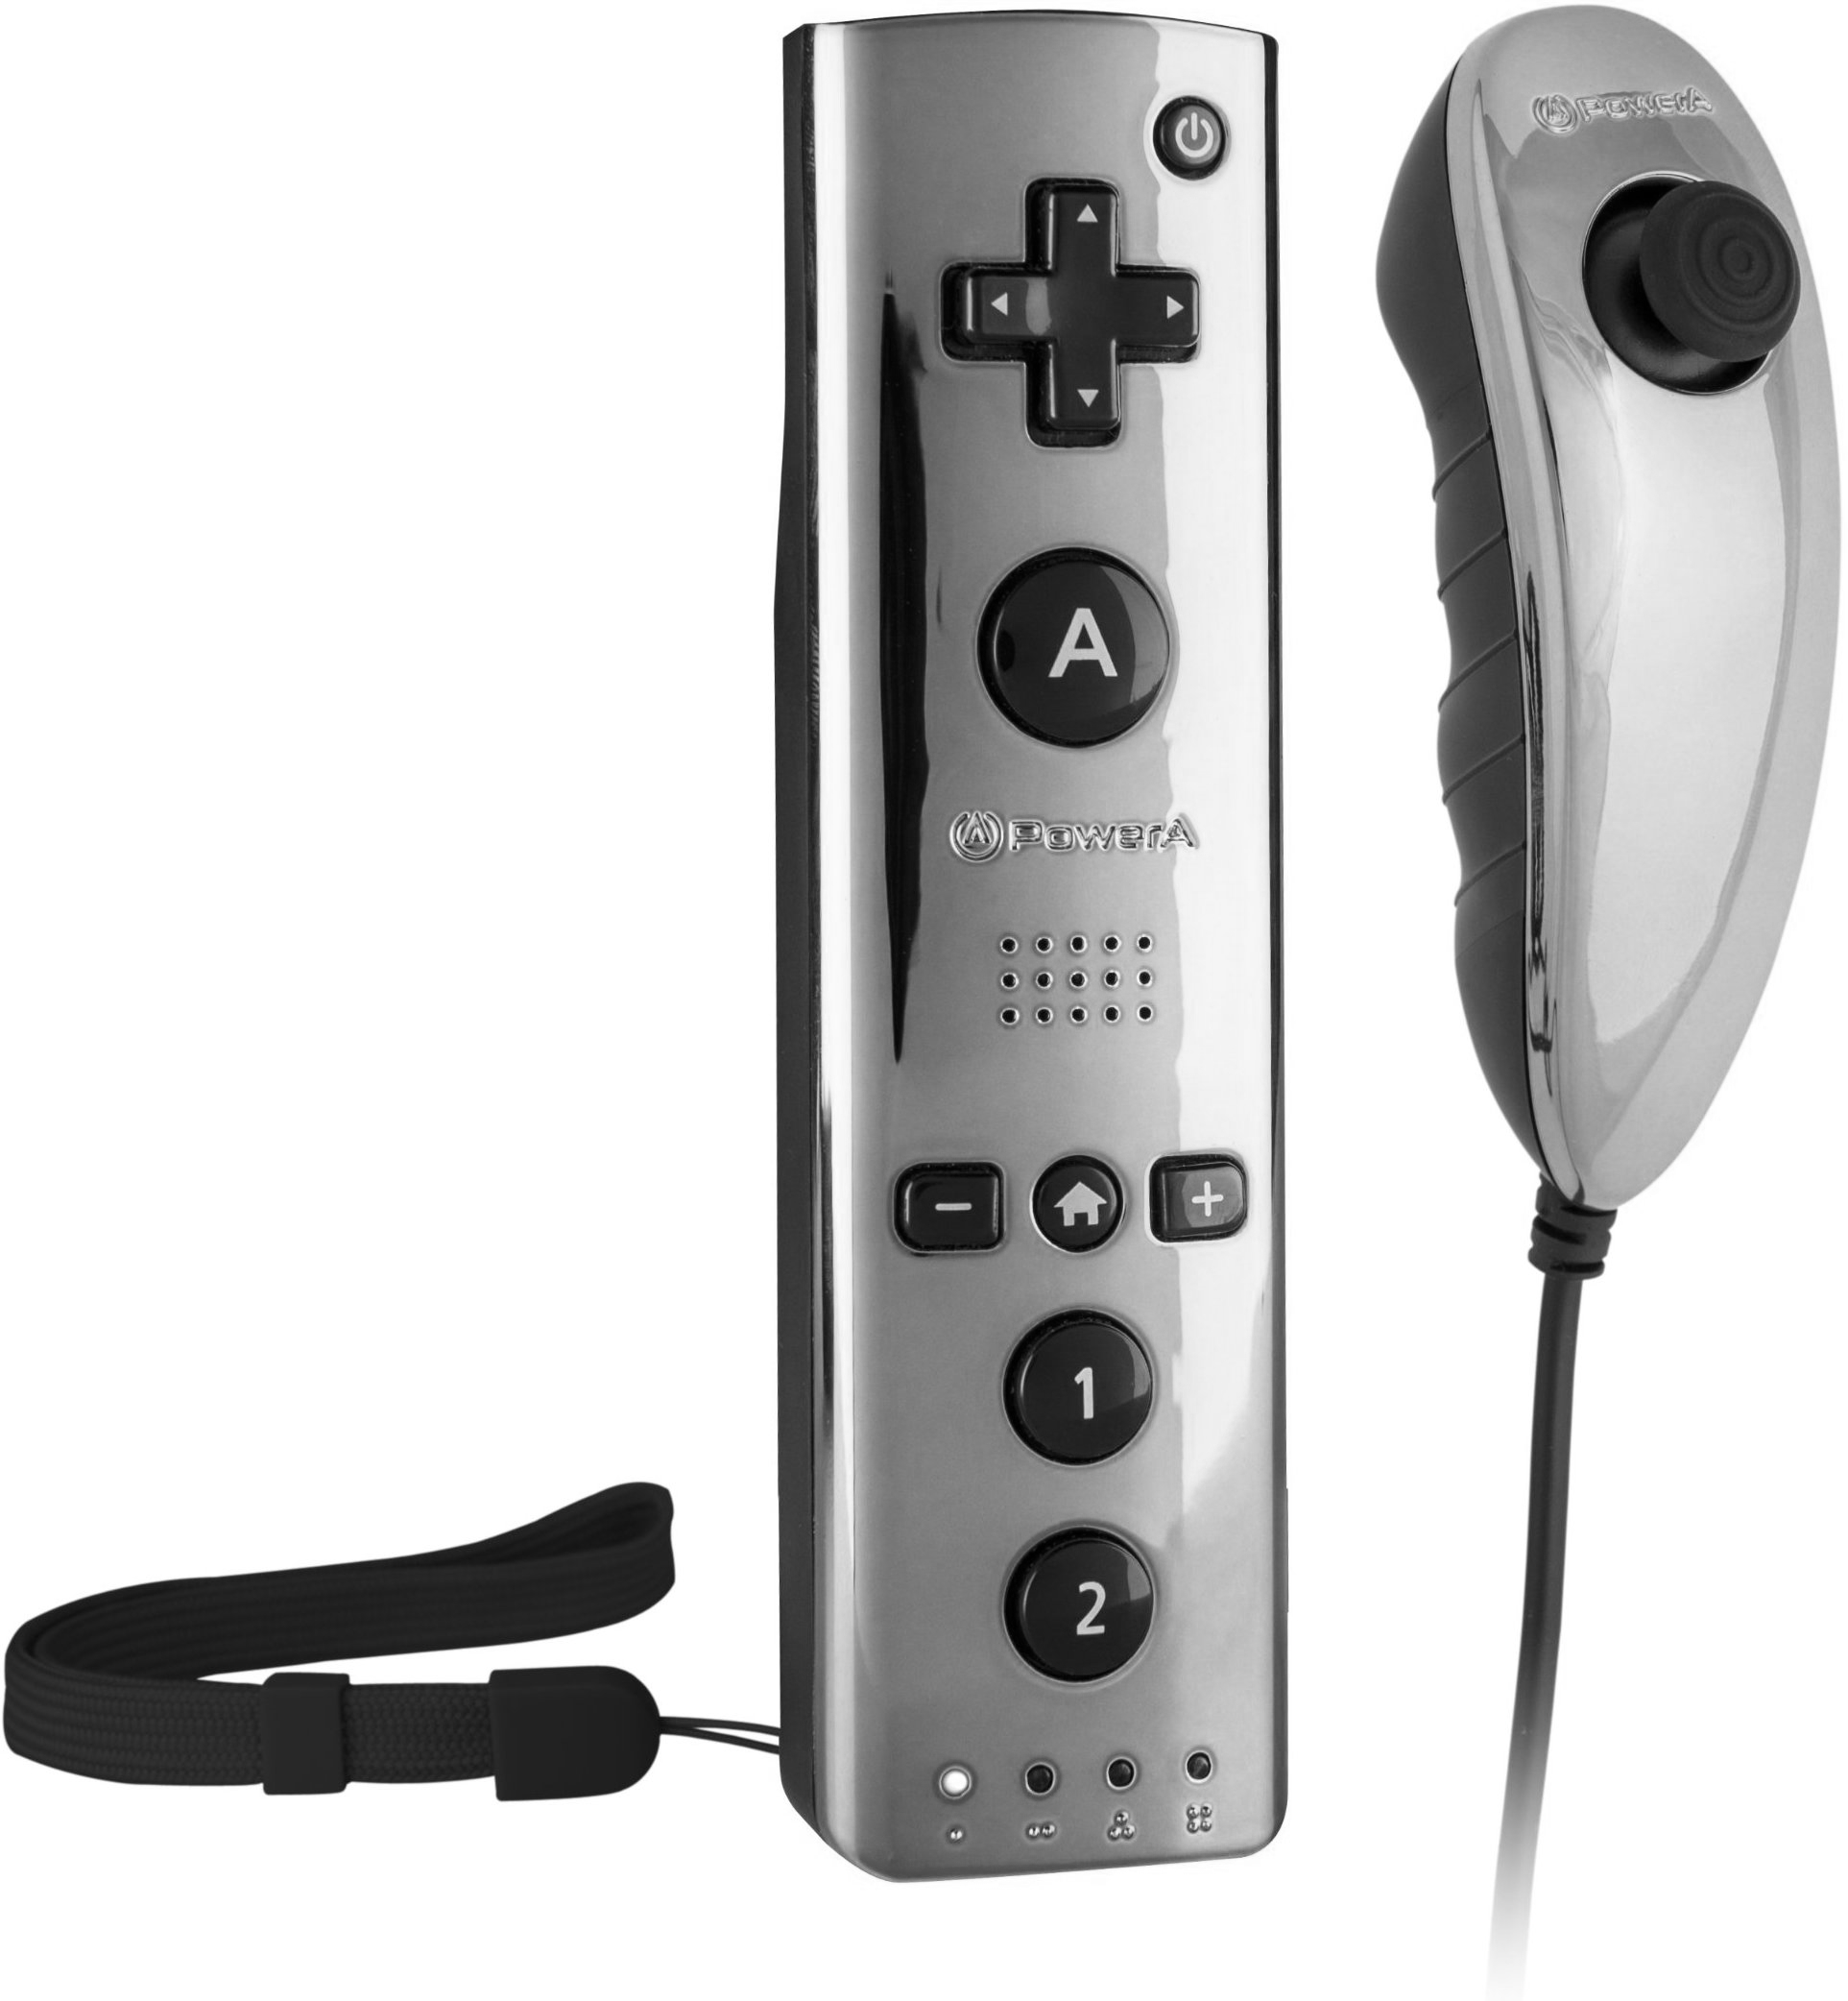 Power A Chromatic Wiimote Motion Plus Controller for Nintendo Wii/Wii U, Gun Metal (Open Box - Like New)